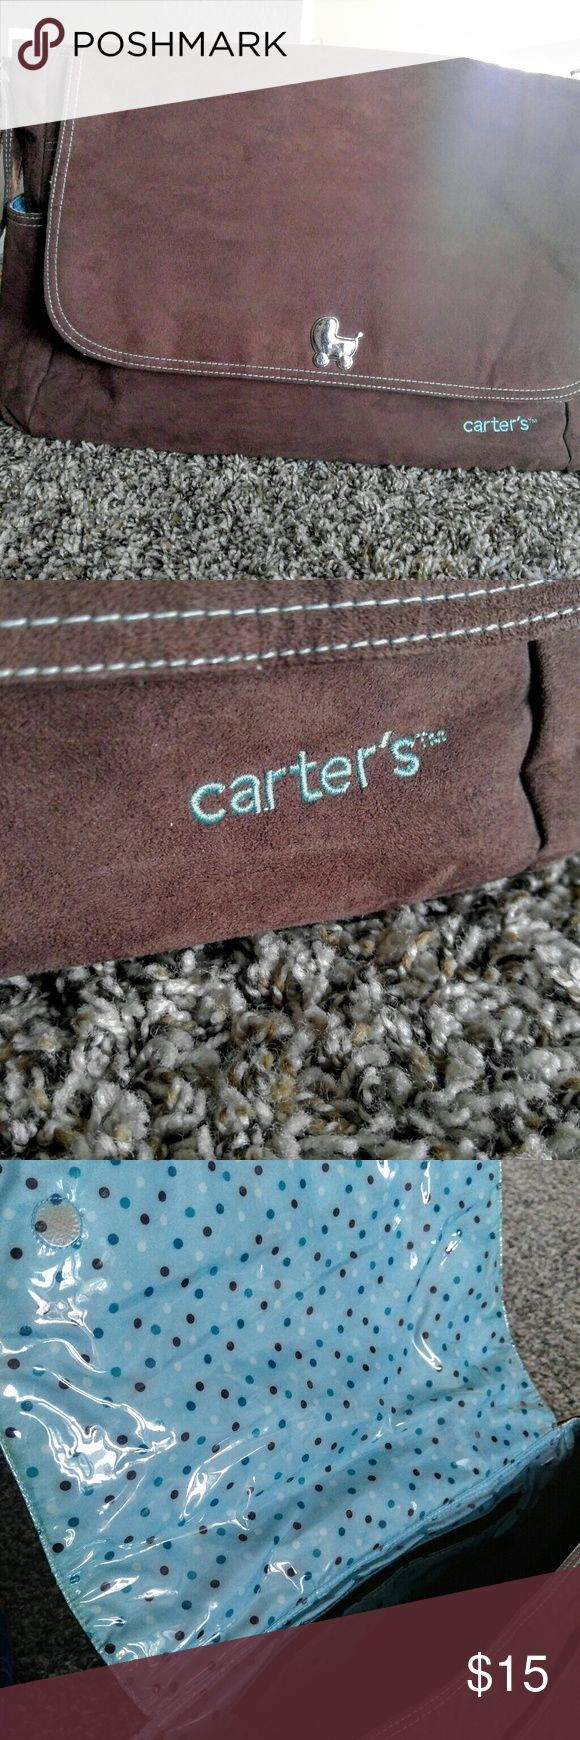 Carter's Brown Suede Messenger Diaper Bag Very nice Brown Carter's Diaper Bag  Comes with matching changing mat This bag is no longer available in stores Carter's Bags Baby Bags